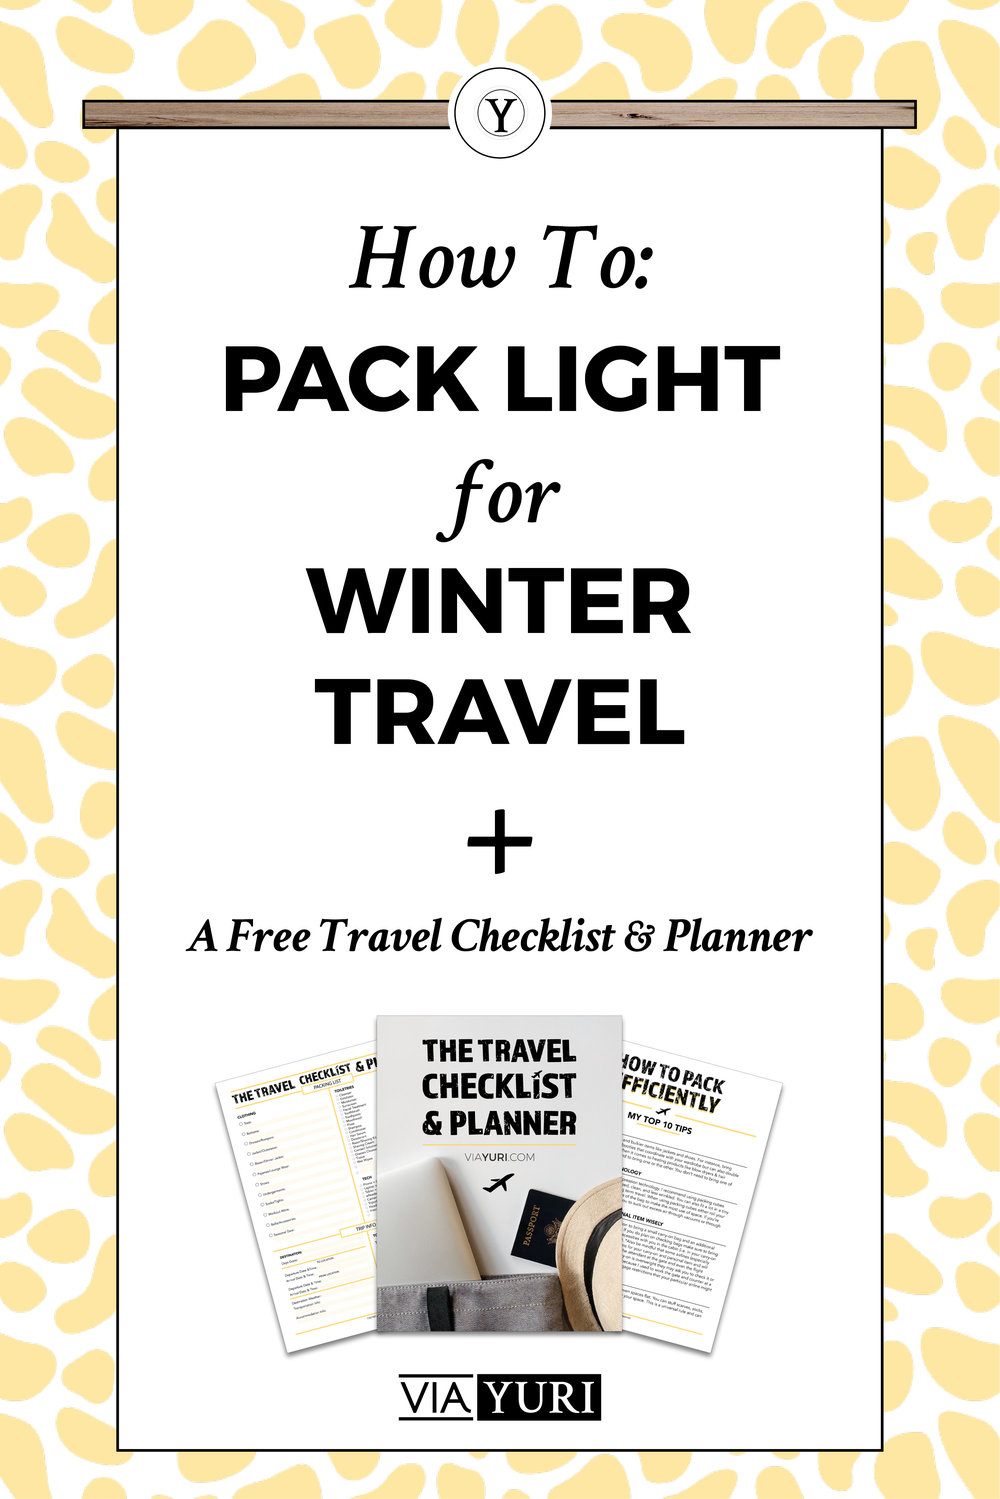 How to Pack Light for Winter & Cold Weather Travel. Learn the Top 7 Tips and beat the cold weather blues. Plus get the FREE TRAVEL CHECKLIST & PLANNER!